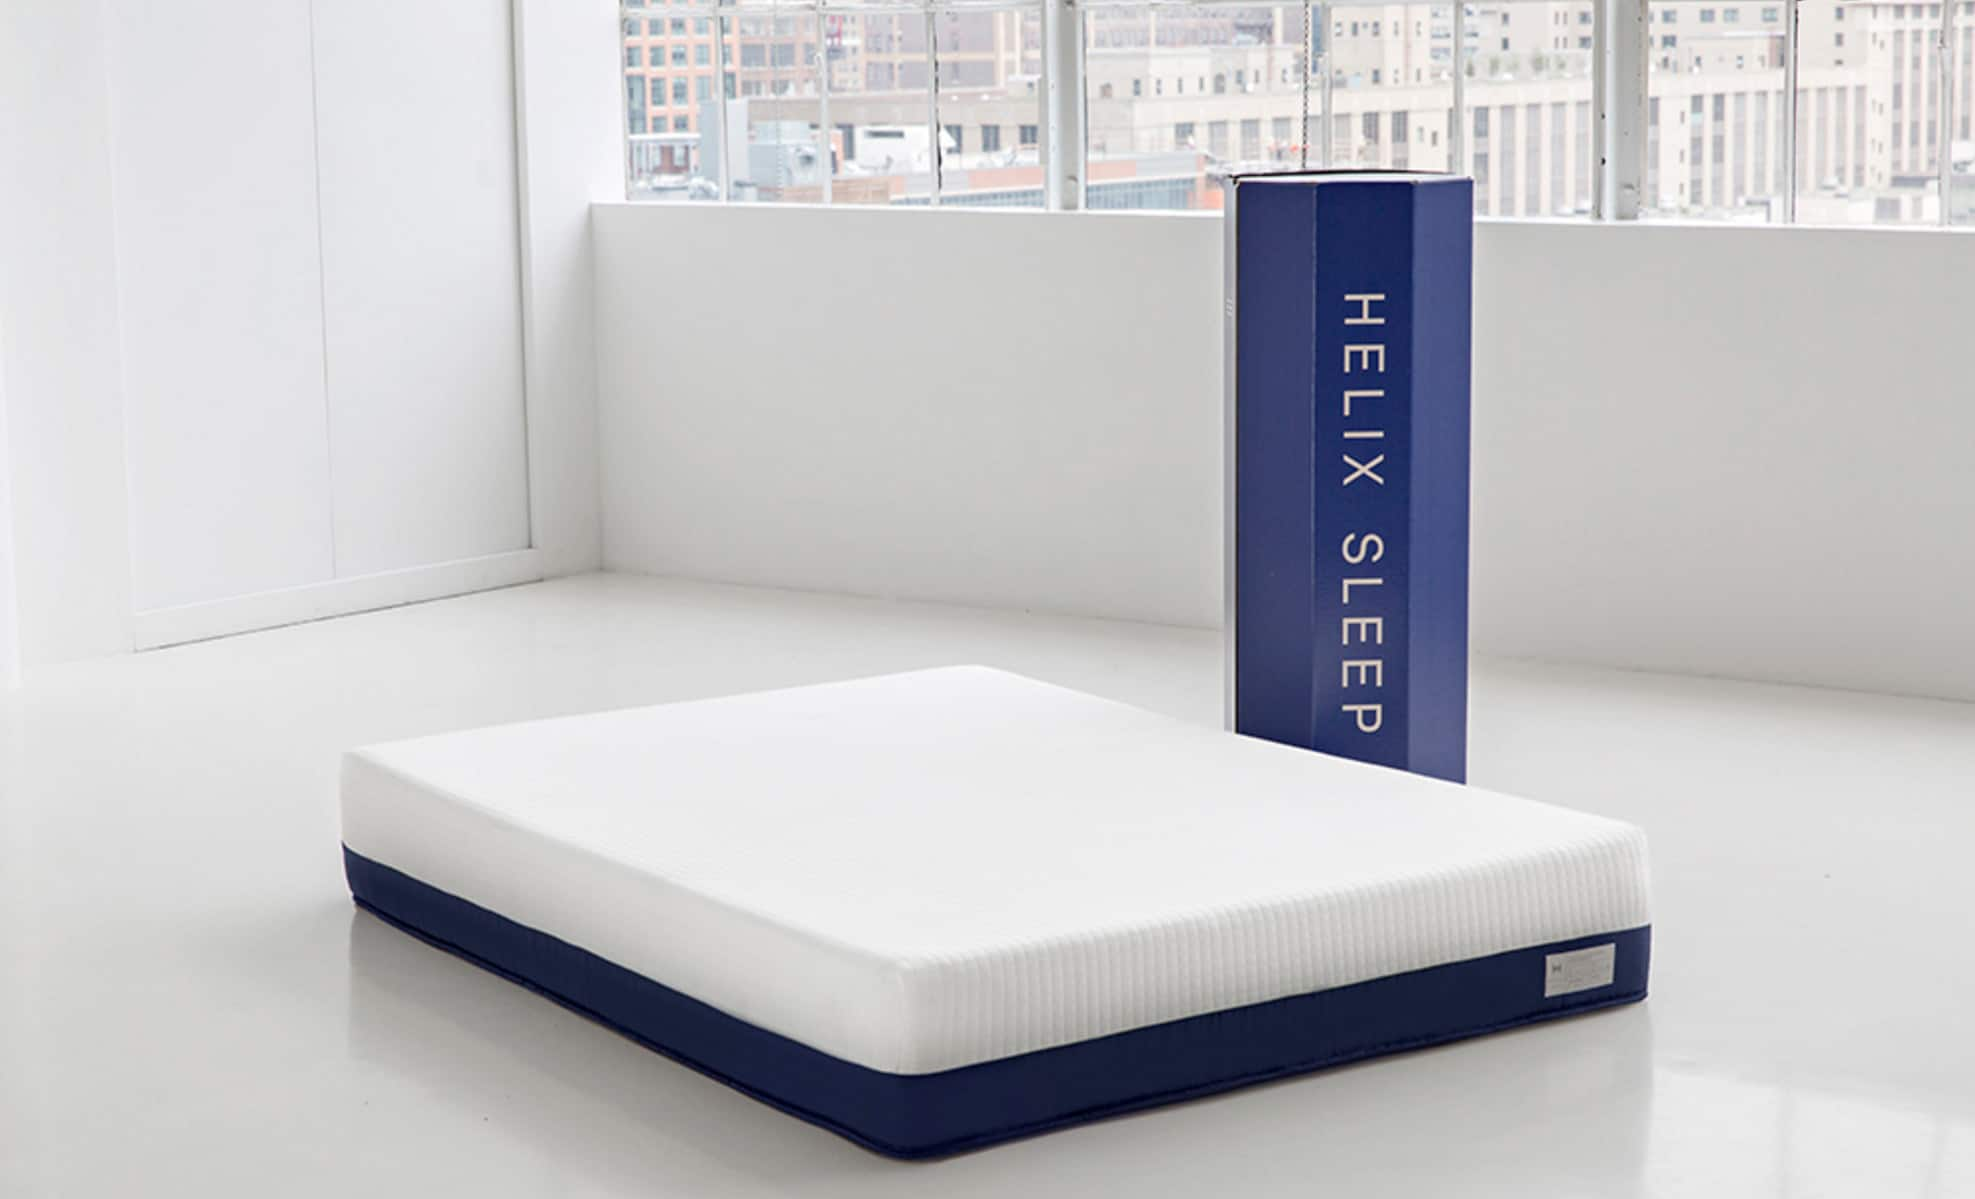 Mattress in a box from Helix Sleep